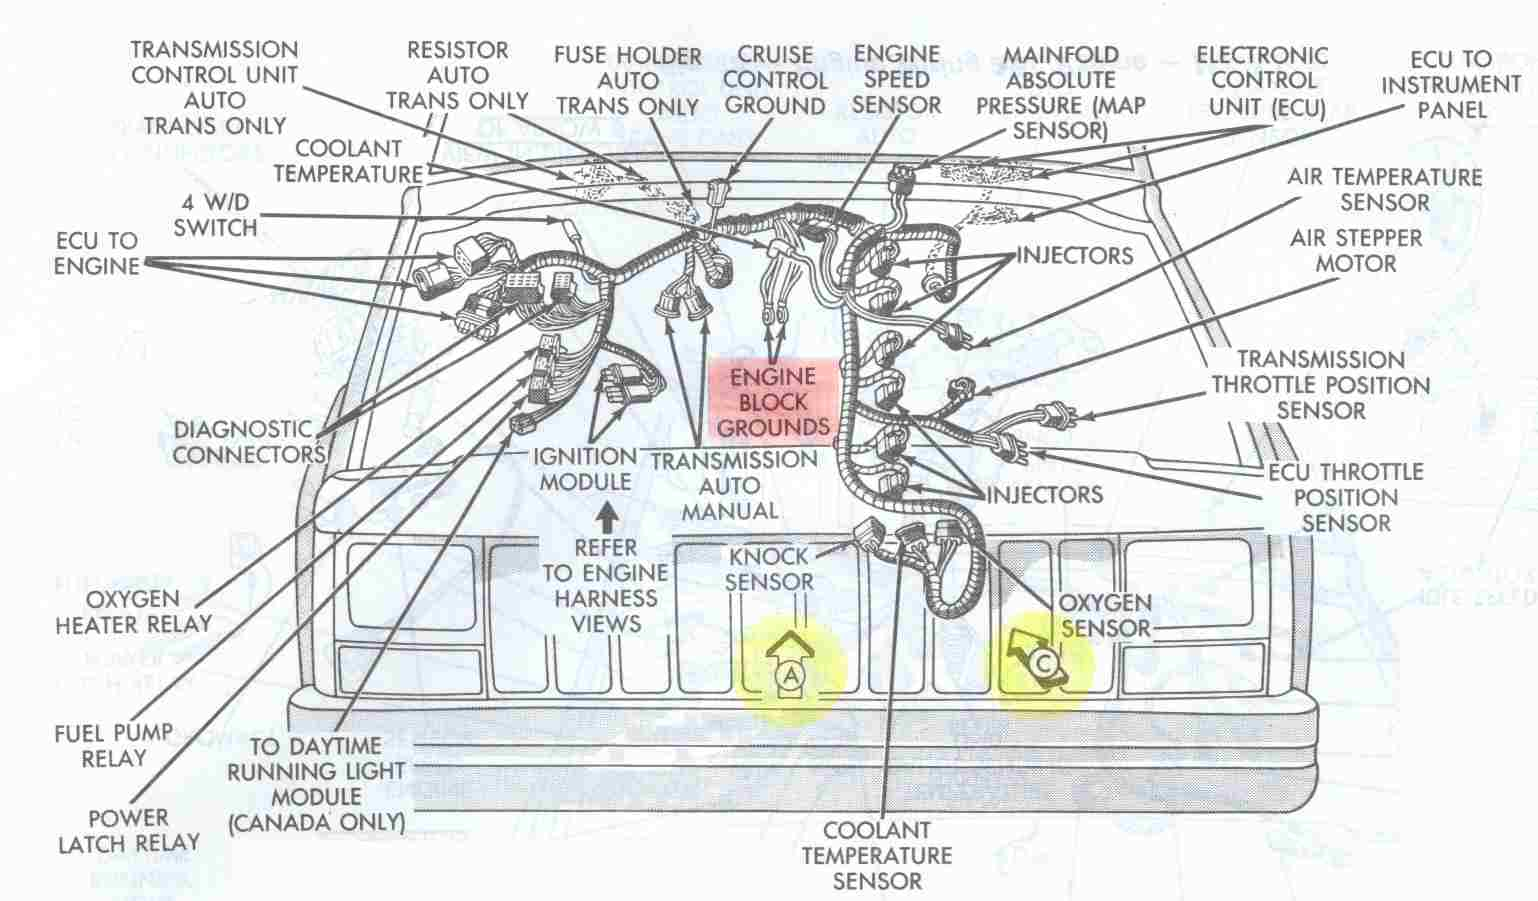 Electrical_Engine_Ground_Points_Overview jeep cherokee electrical diagnosing erratic behavior of engine 2001 jeep cherokee wiring harness at edmiracle.co